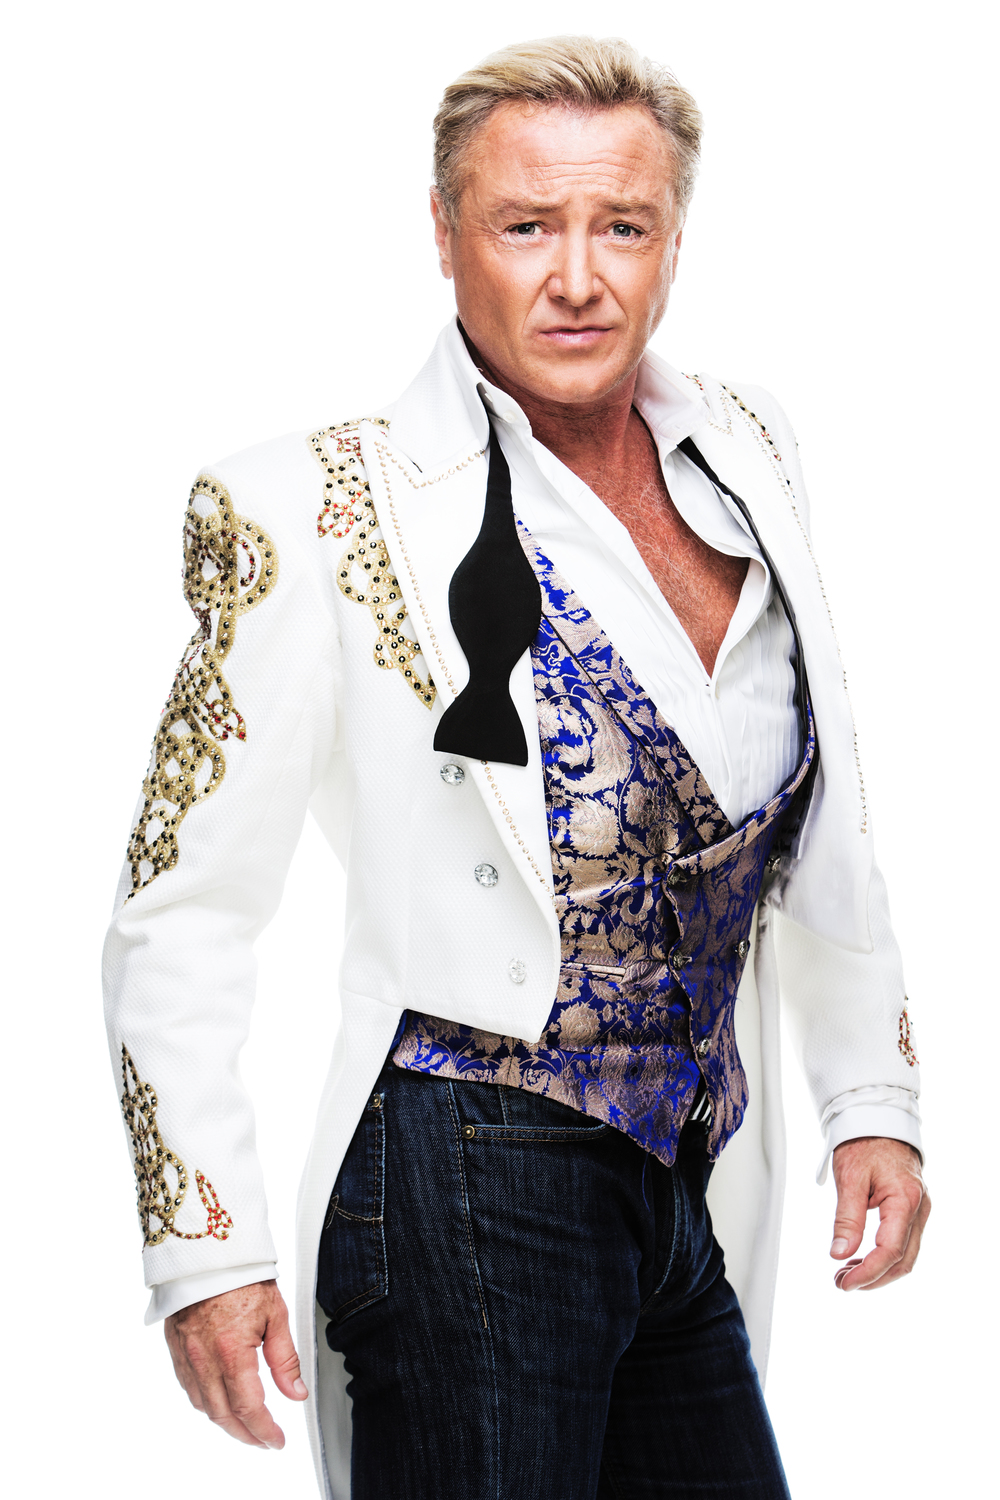 MichaelFlatley_PhotoCredit_BrianDoherty_494.jpg